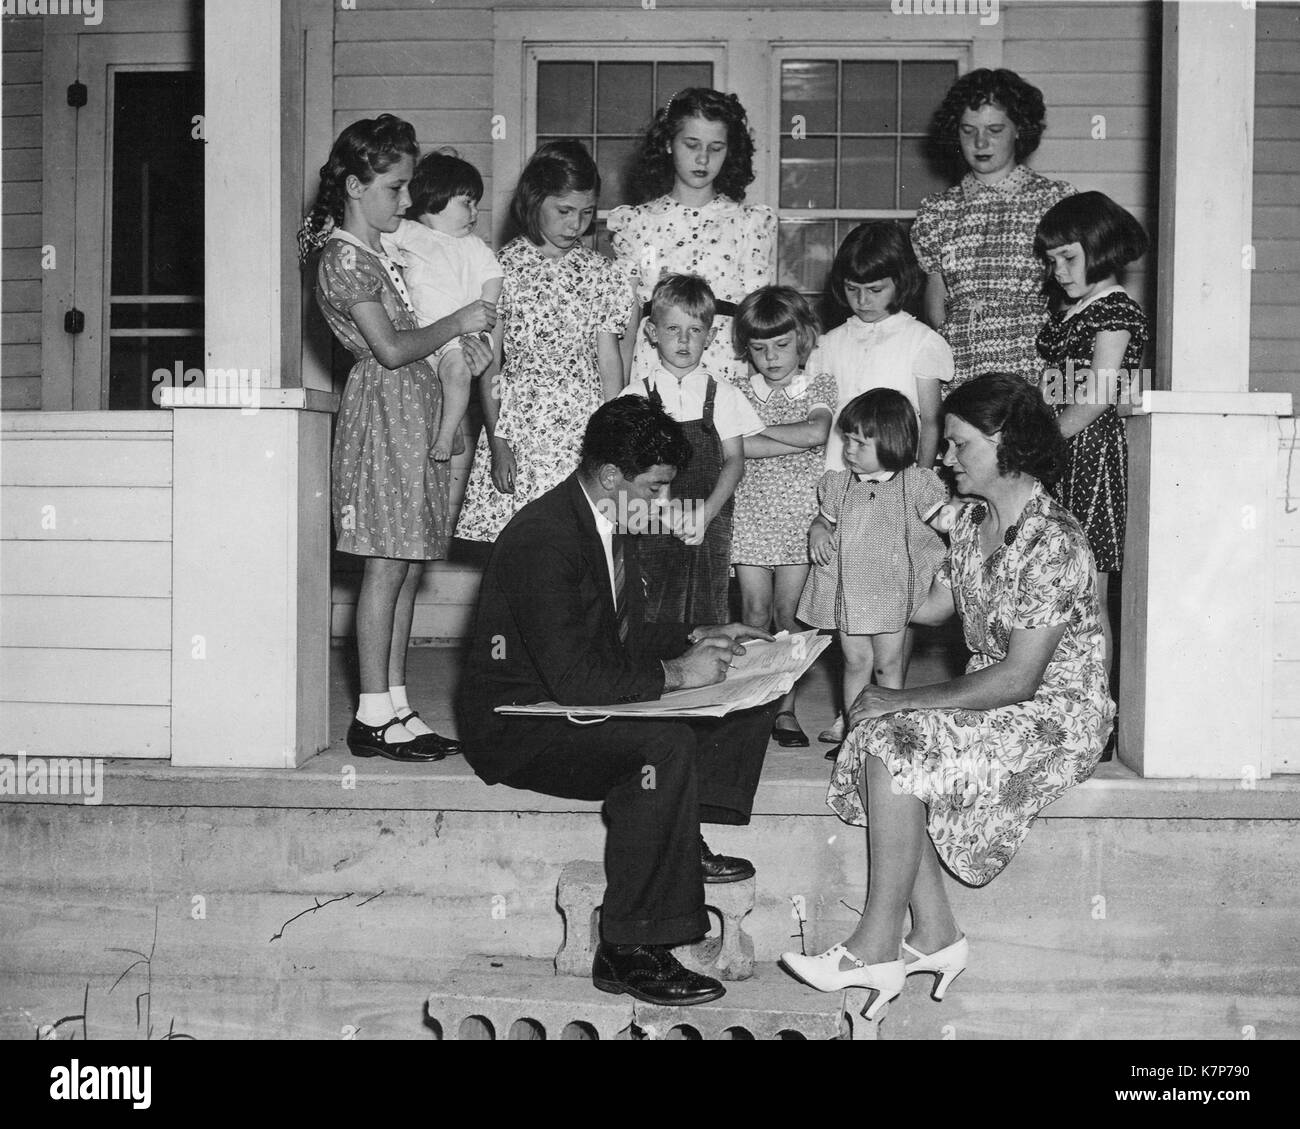 Male enumerator counts a large family of nine girls and one boy for the 1940 Census, 1940. - Stock Image